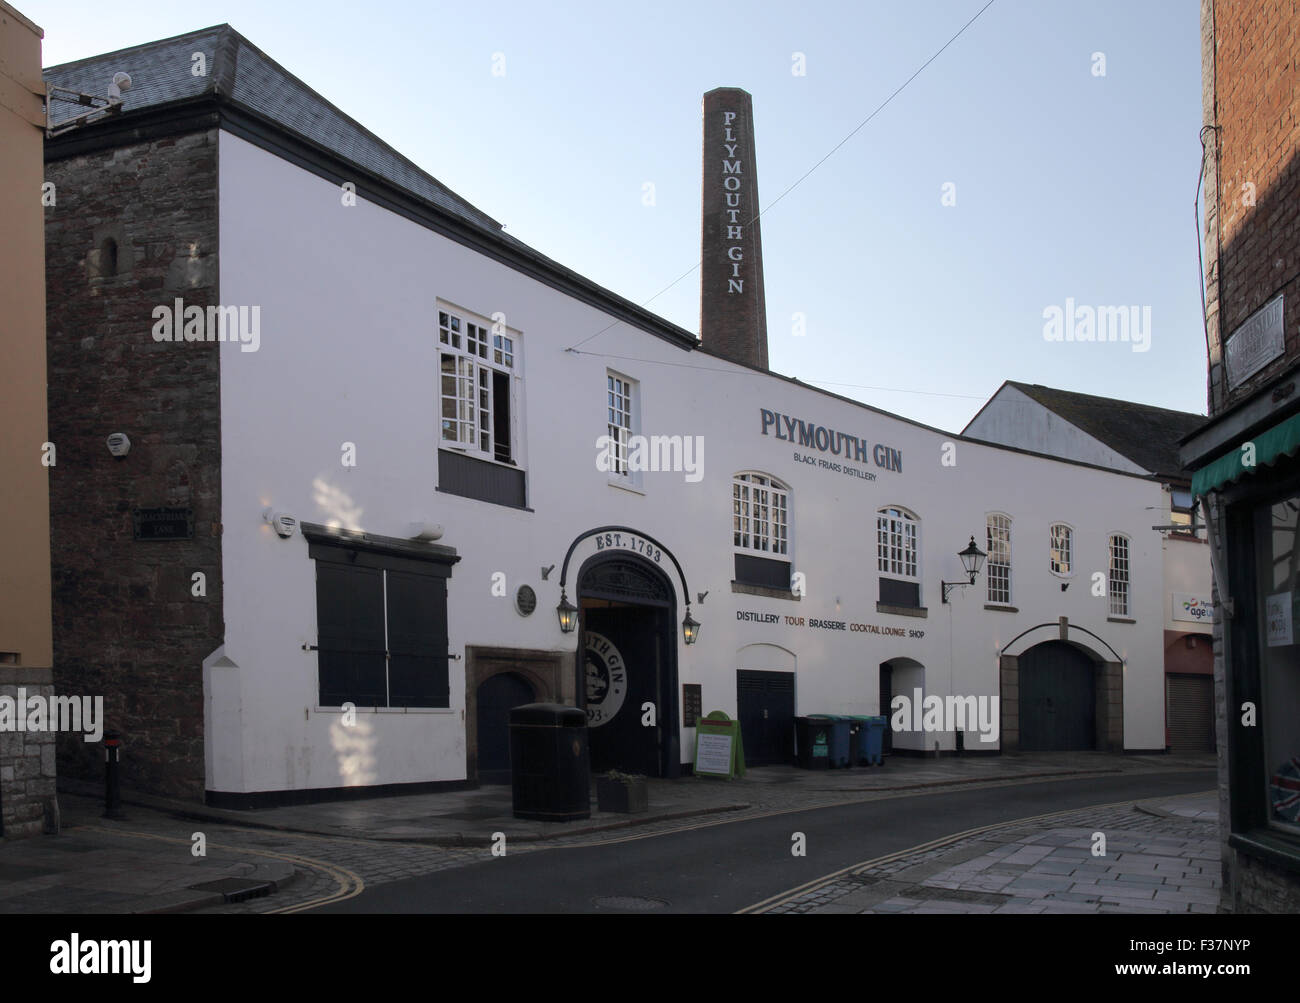 plymouth gin distillery in the barbican area of plymouth Stock Photo